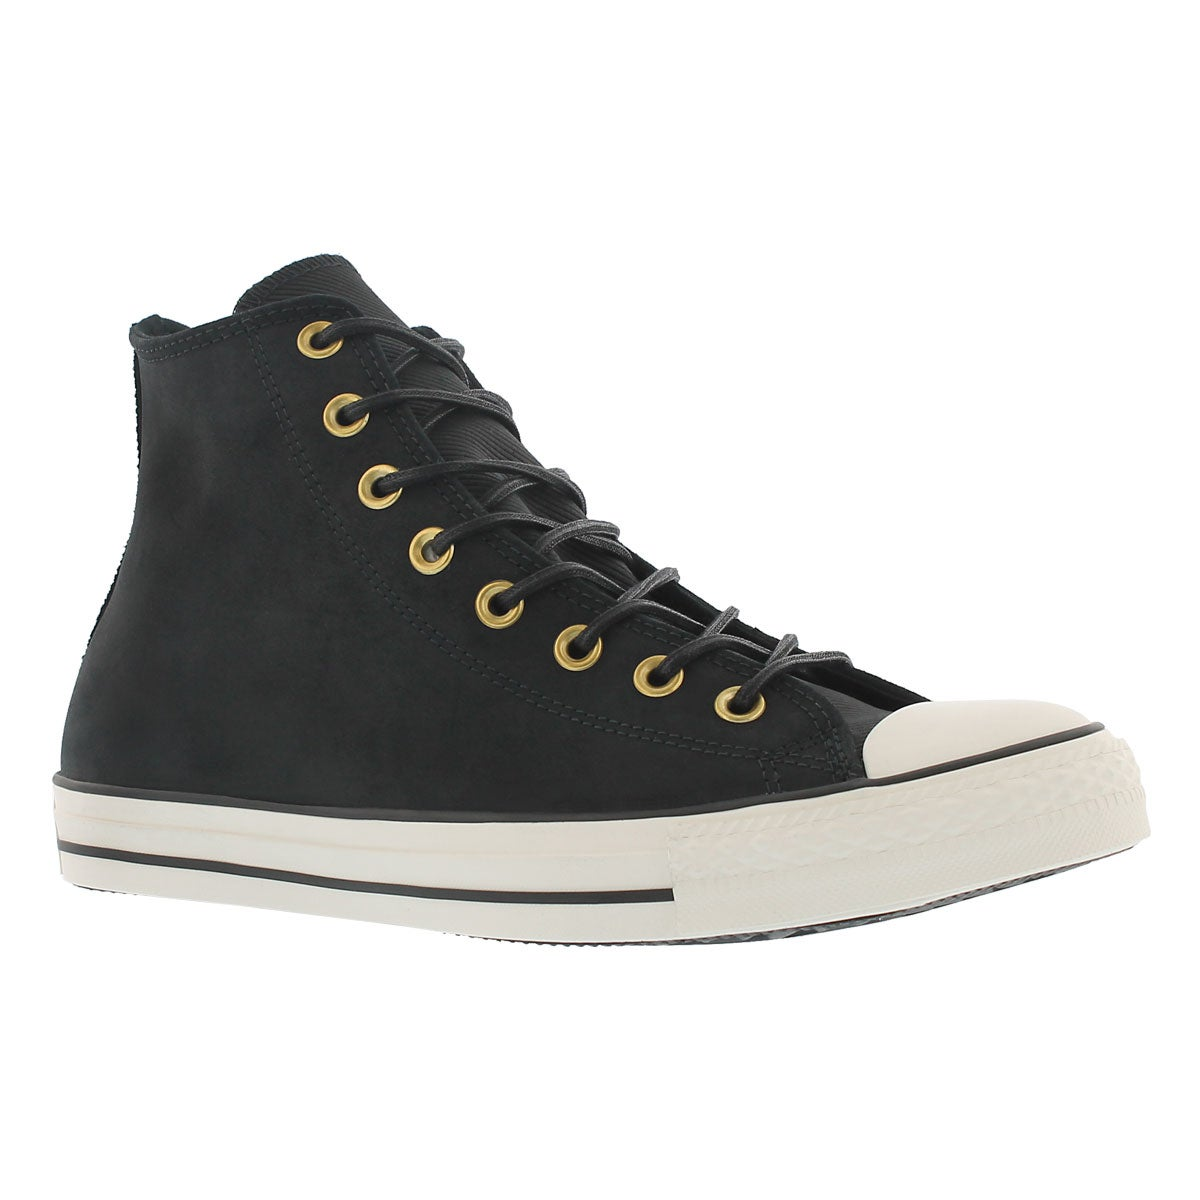 Men's CT ALL STAR LEATHER CORDUROY sneakers